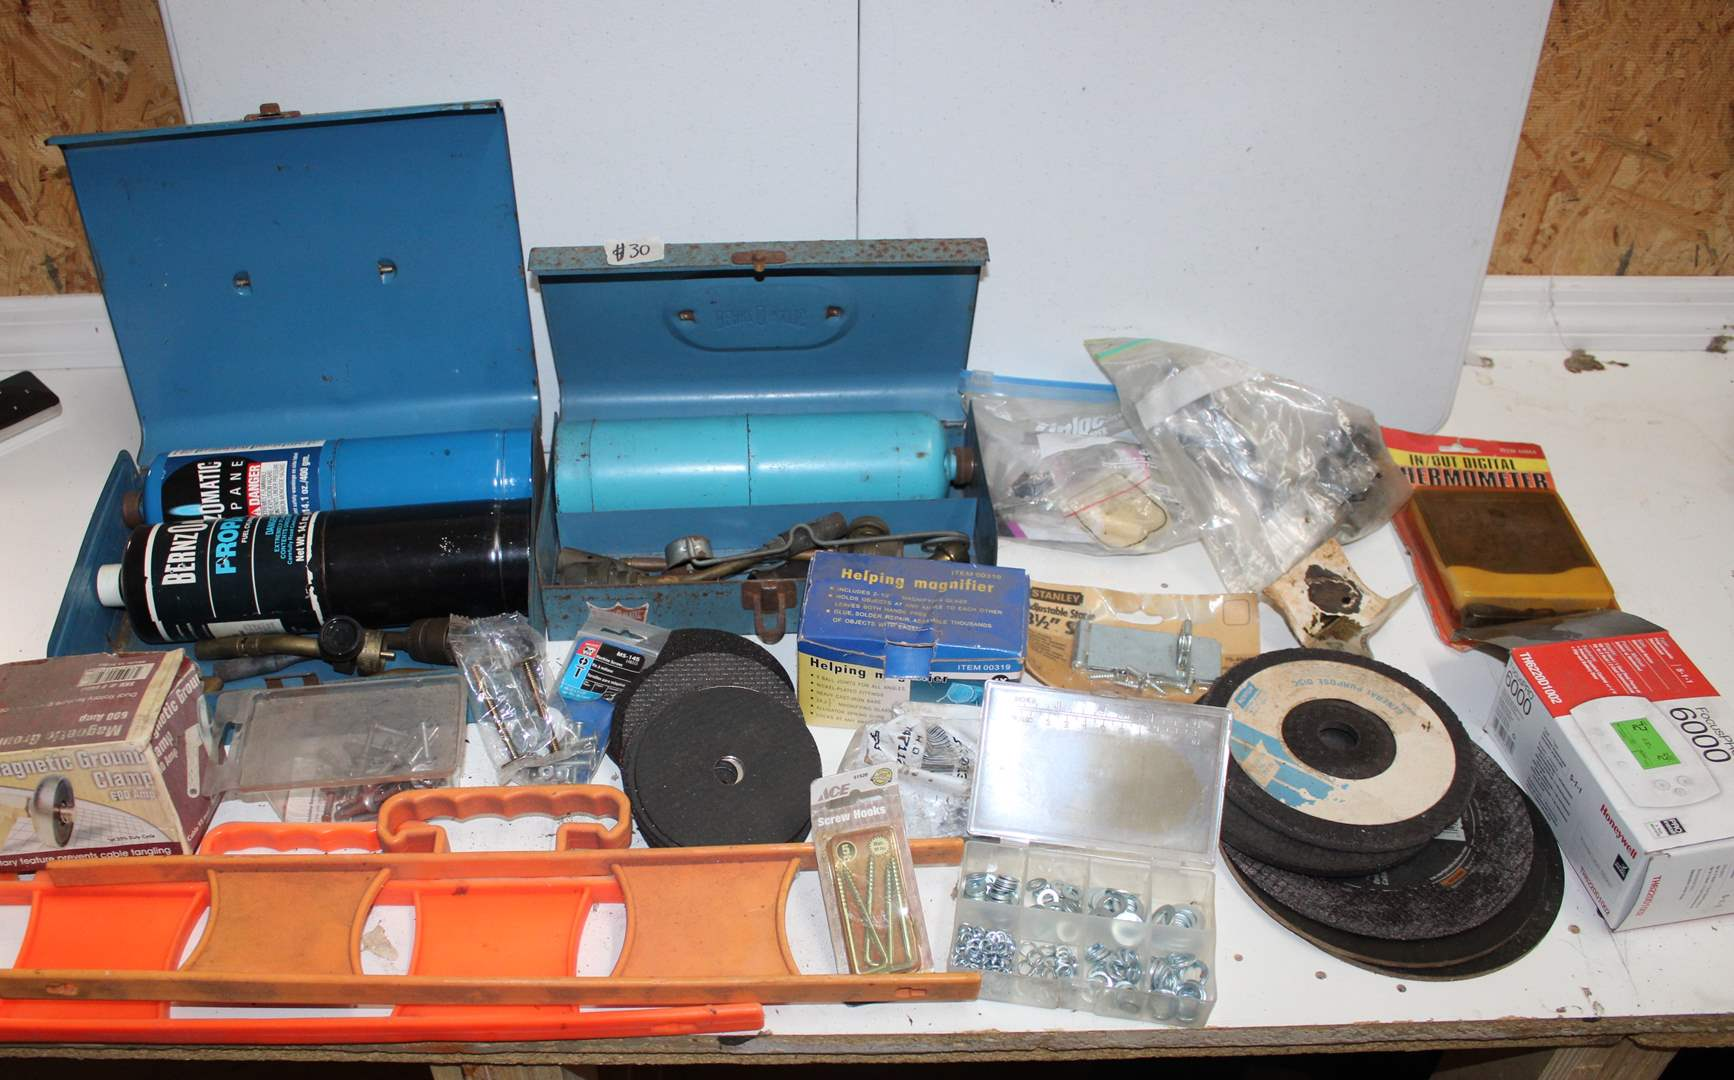 Lot#30 Bernz O Matic Torch Kit, Grinding wheels, magnetic ground clamp, garage misc  (main image)